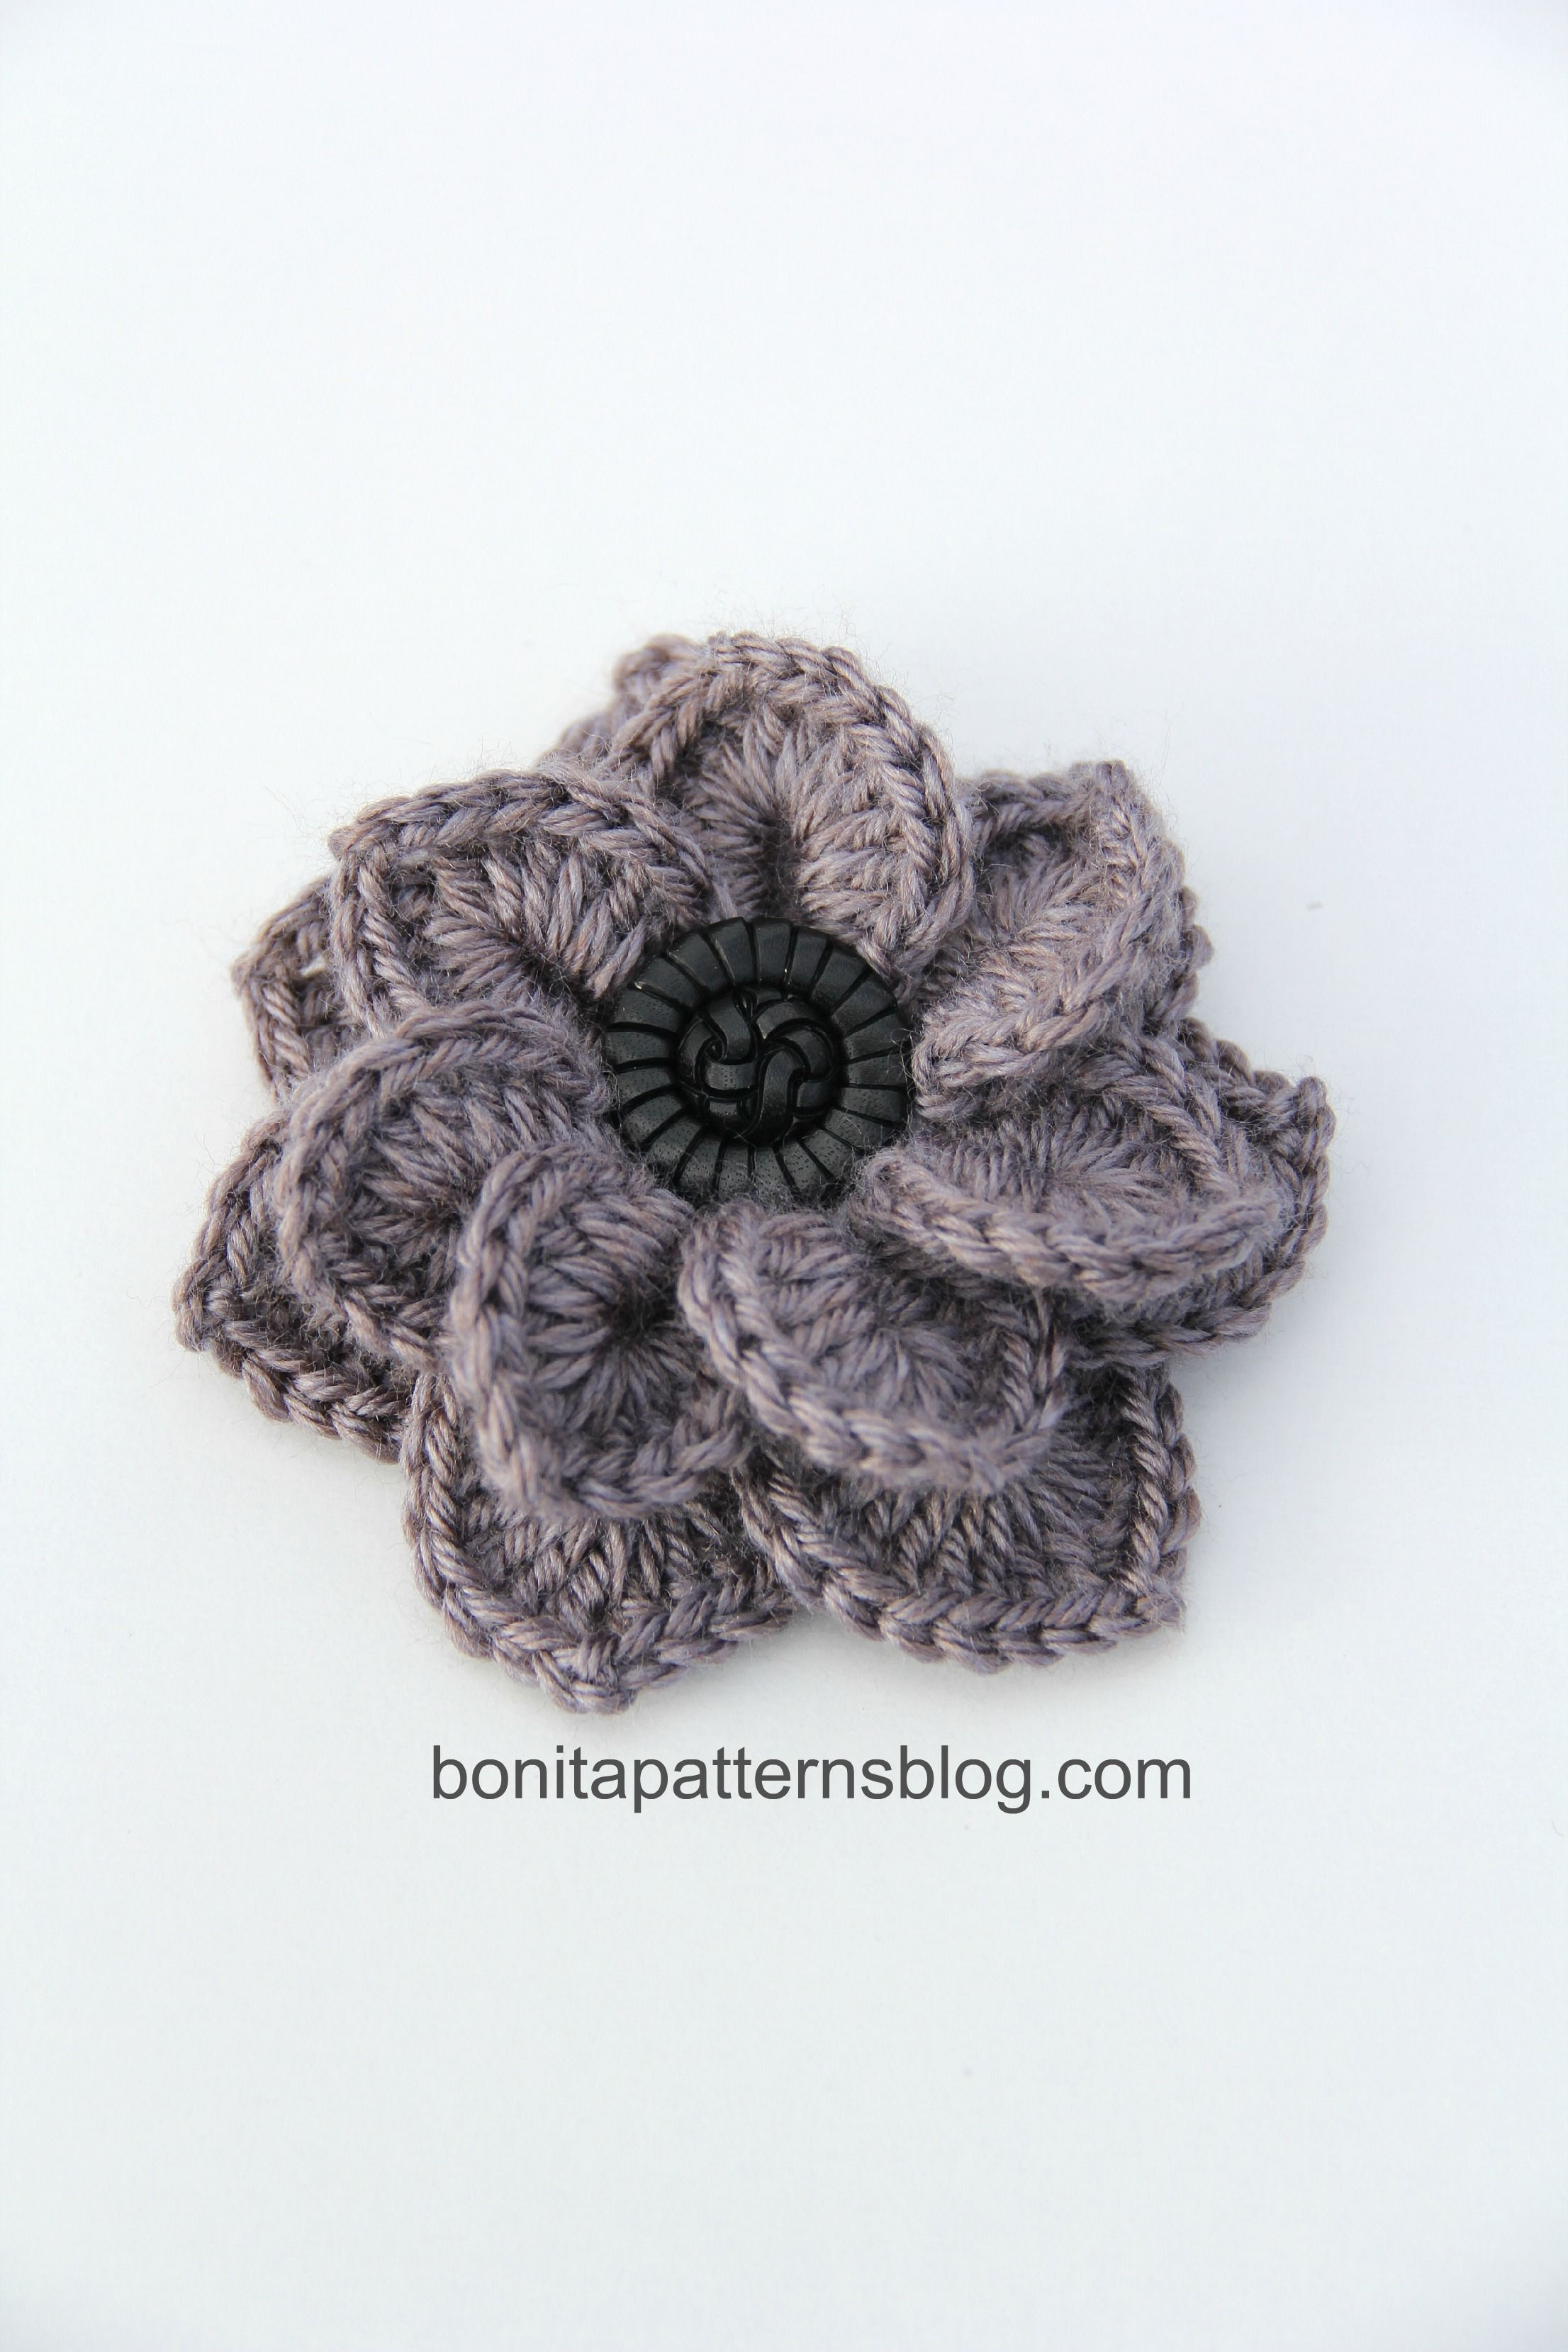 reversible textured slouch and crocodile stitch double layered flower crochet pinterest. Black Bedroom Furniture Sets. Home Design Ideas